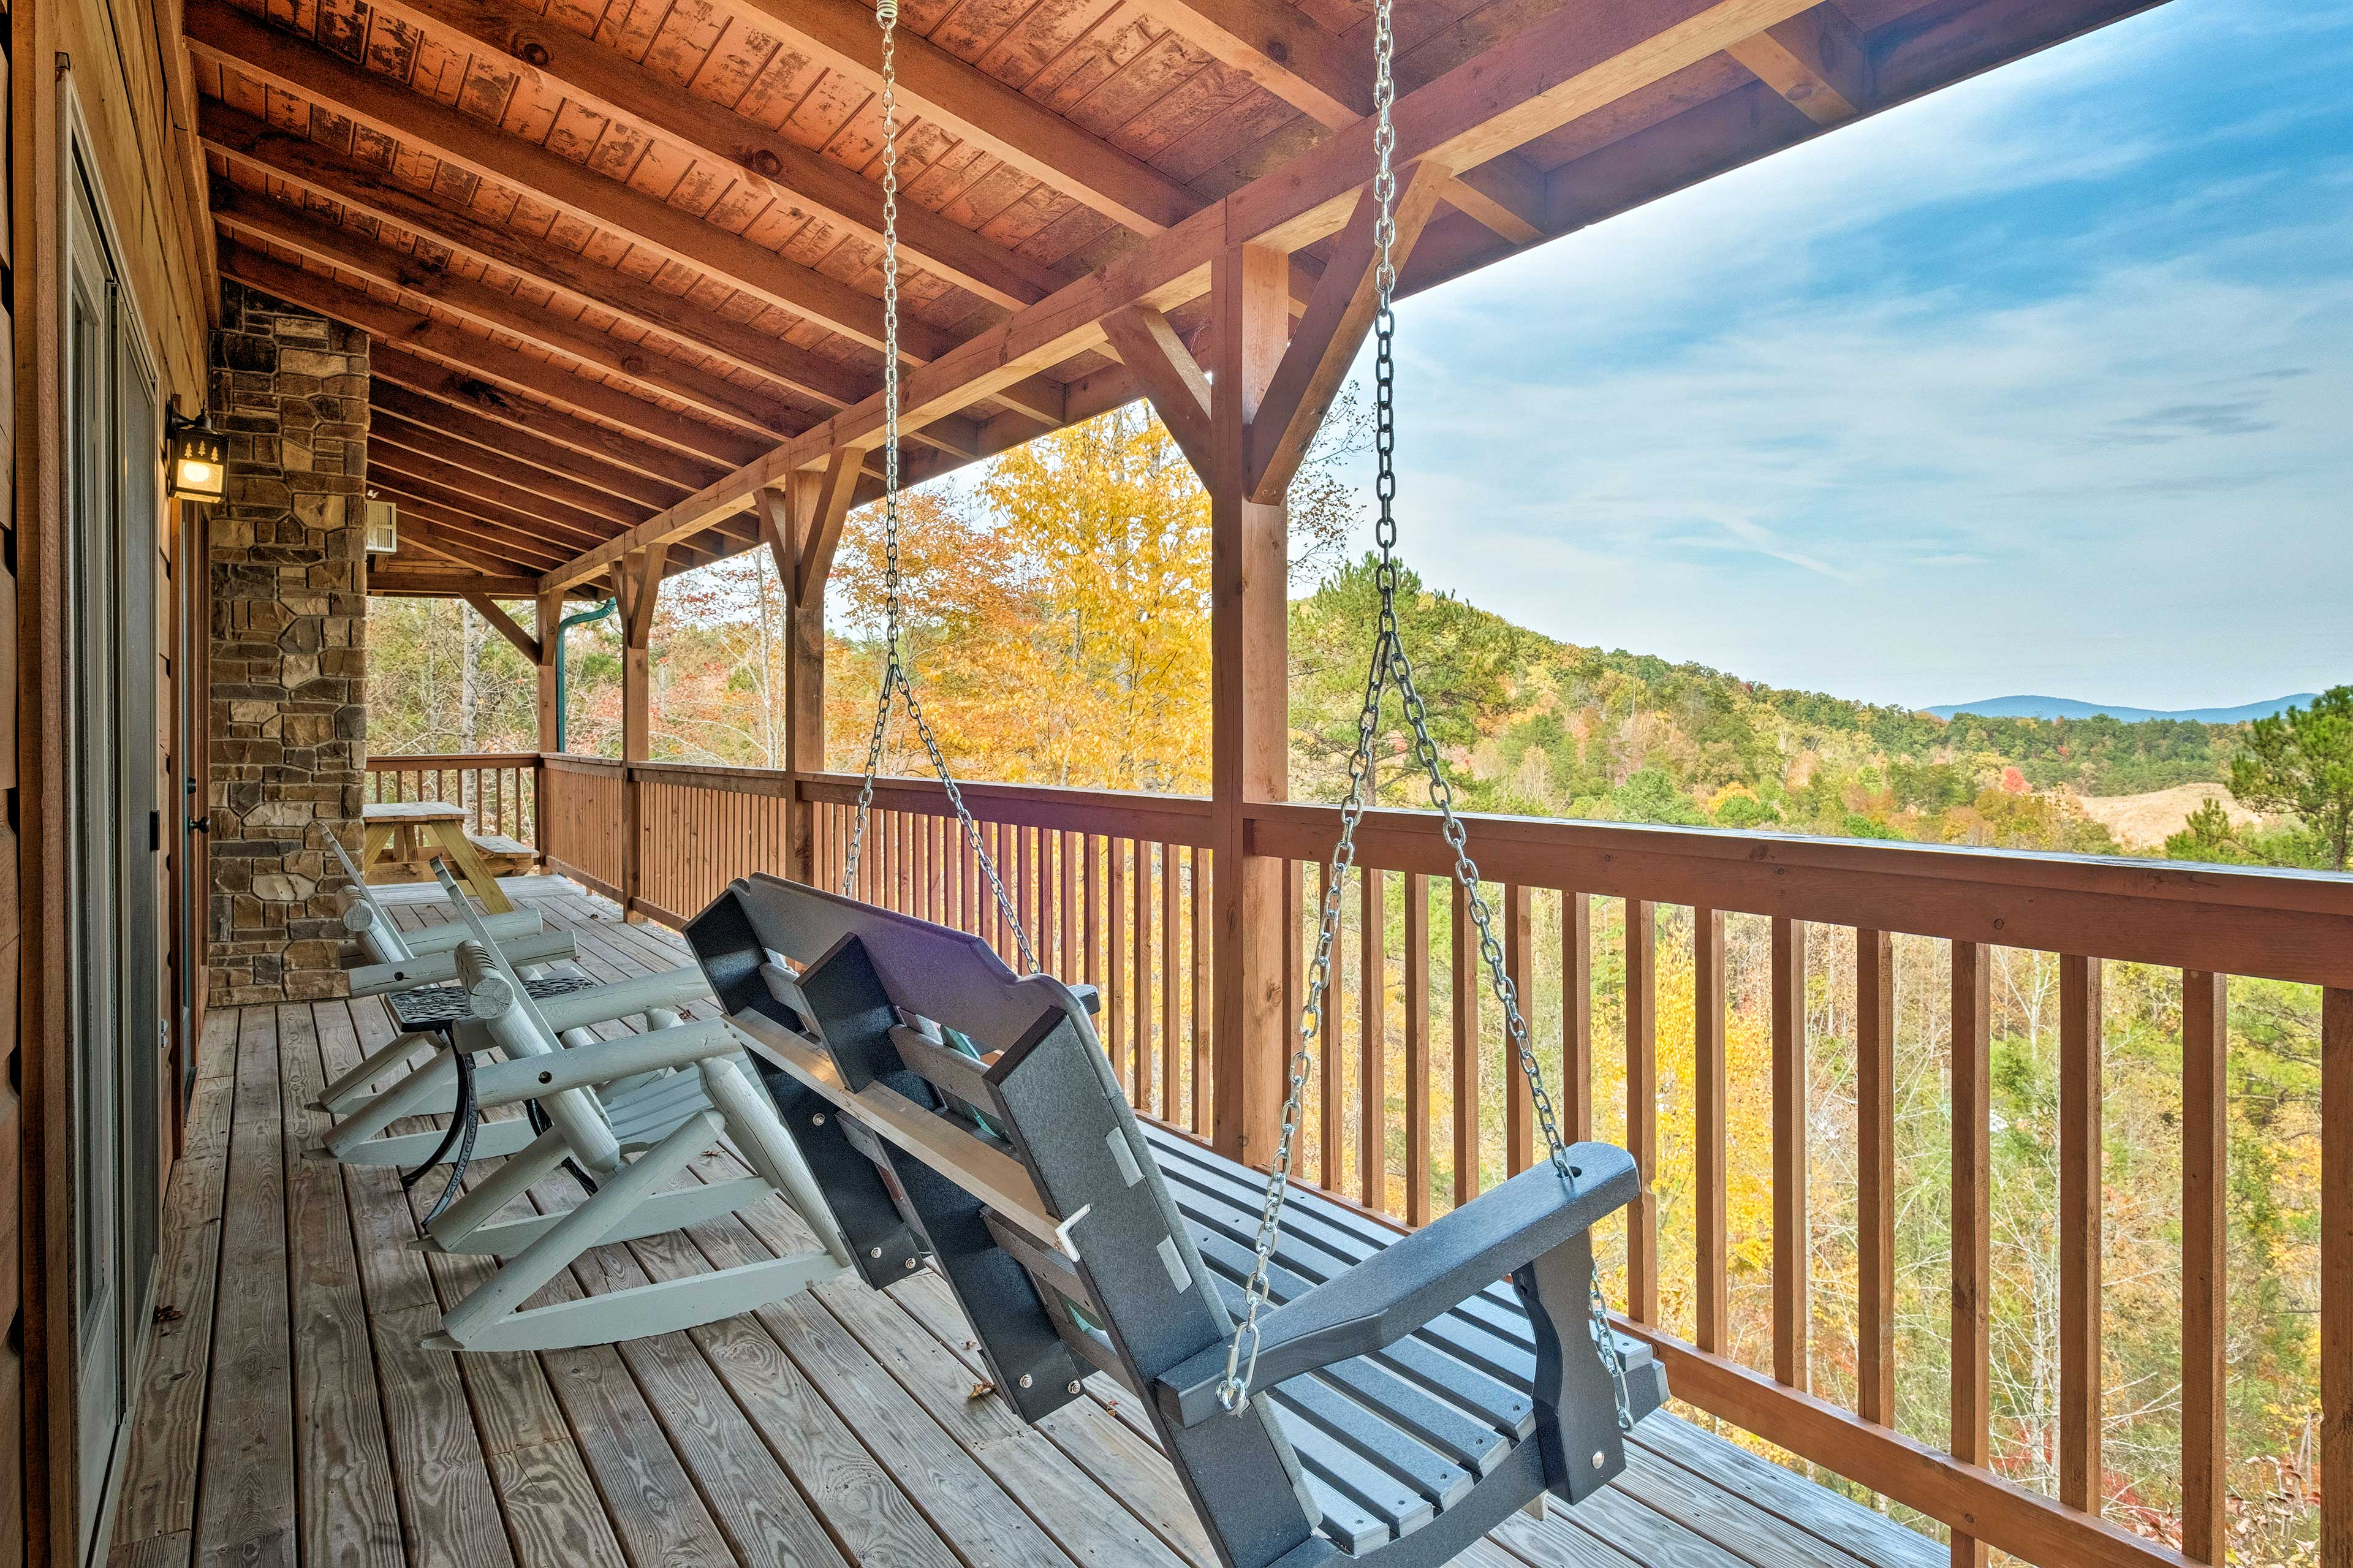 Relax in the swing or rocking chairs while you stargaze.